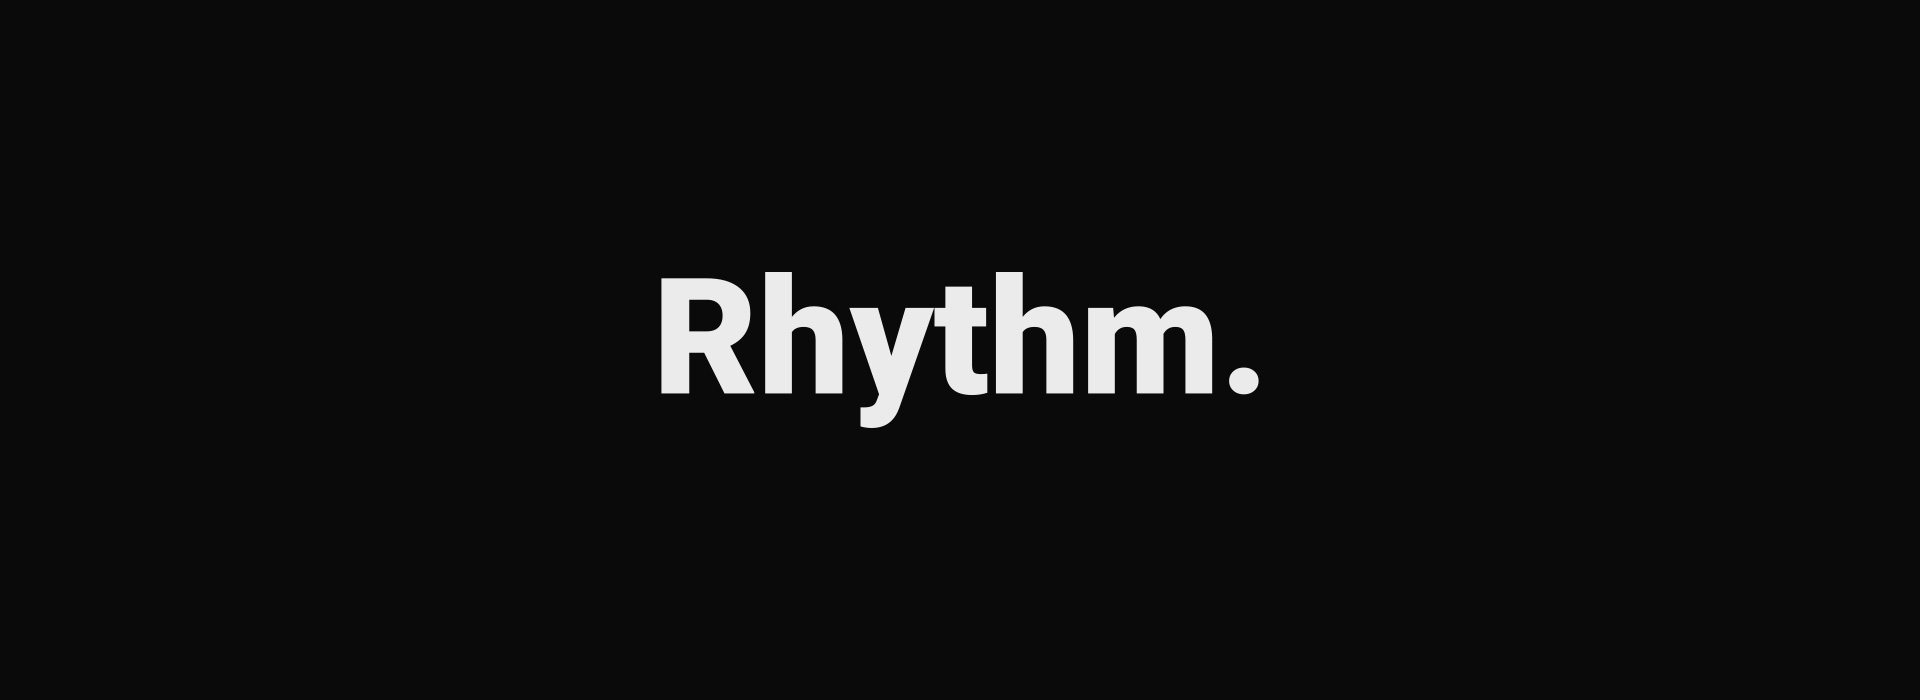 Rhythmic Typography Page | Videohive | Blinque